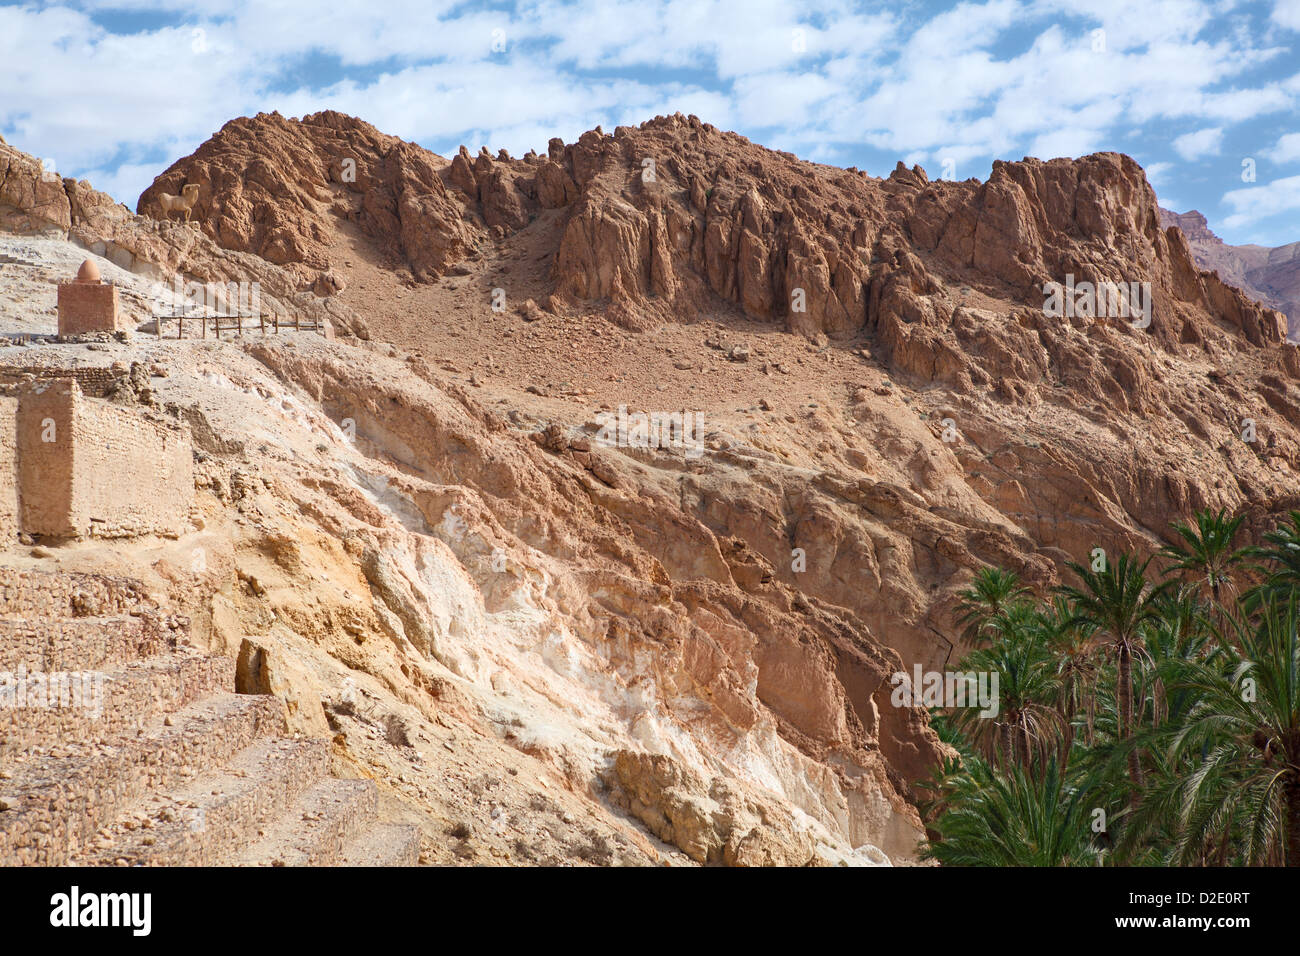 Atlas mountains terrain with oasis in Africa with palm trees. From Tunisian side - Stock Image